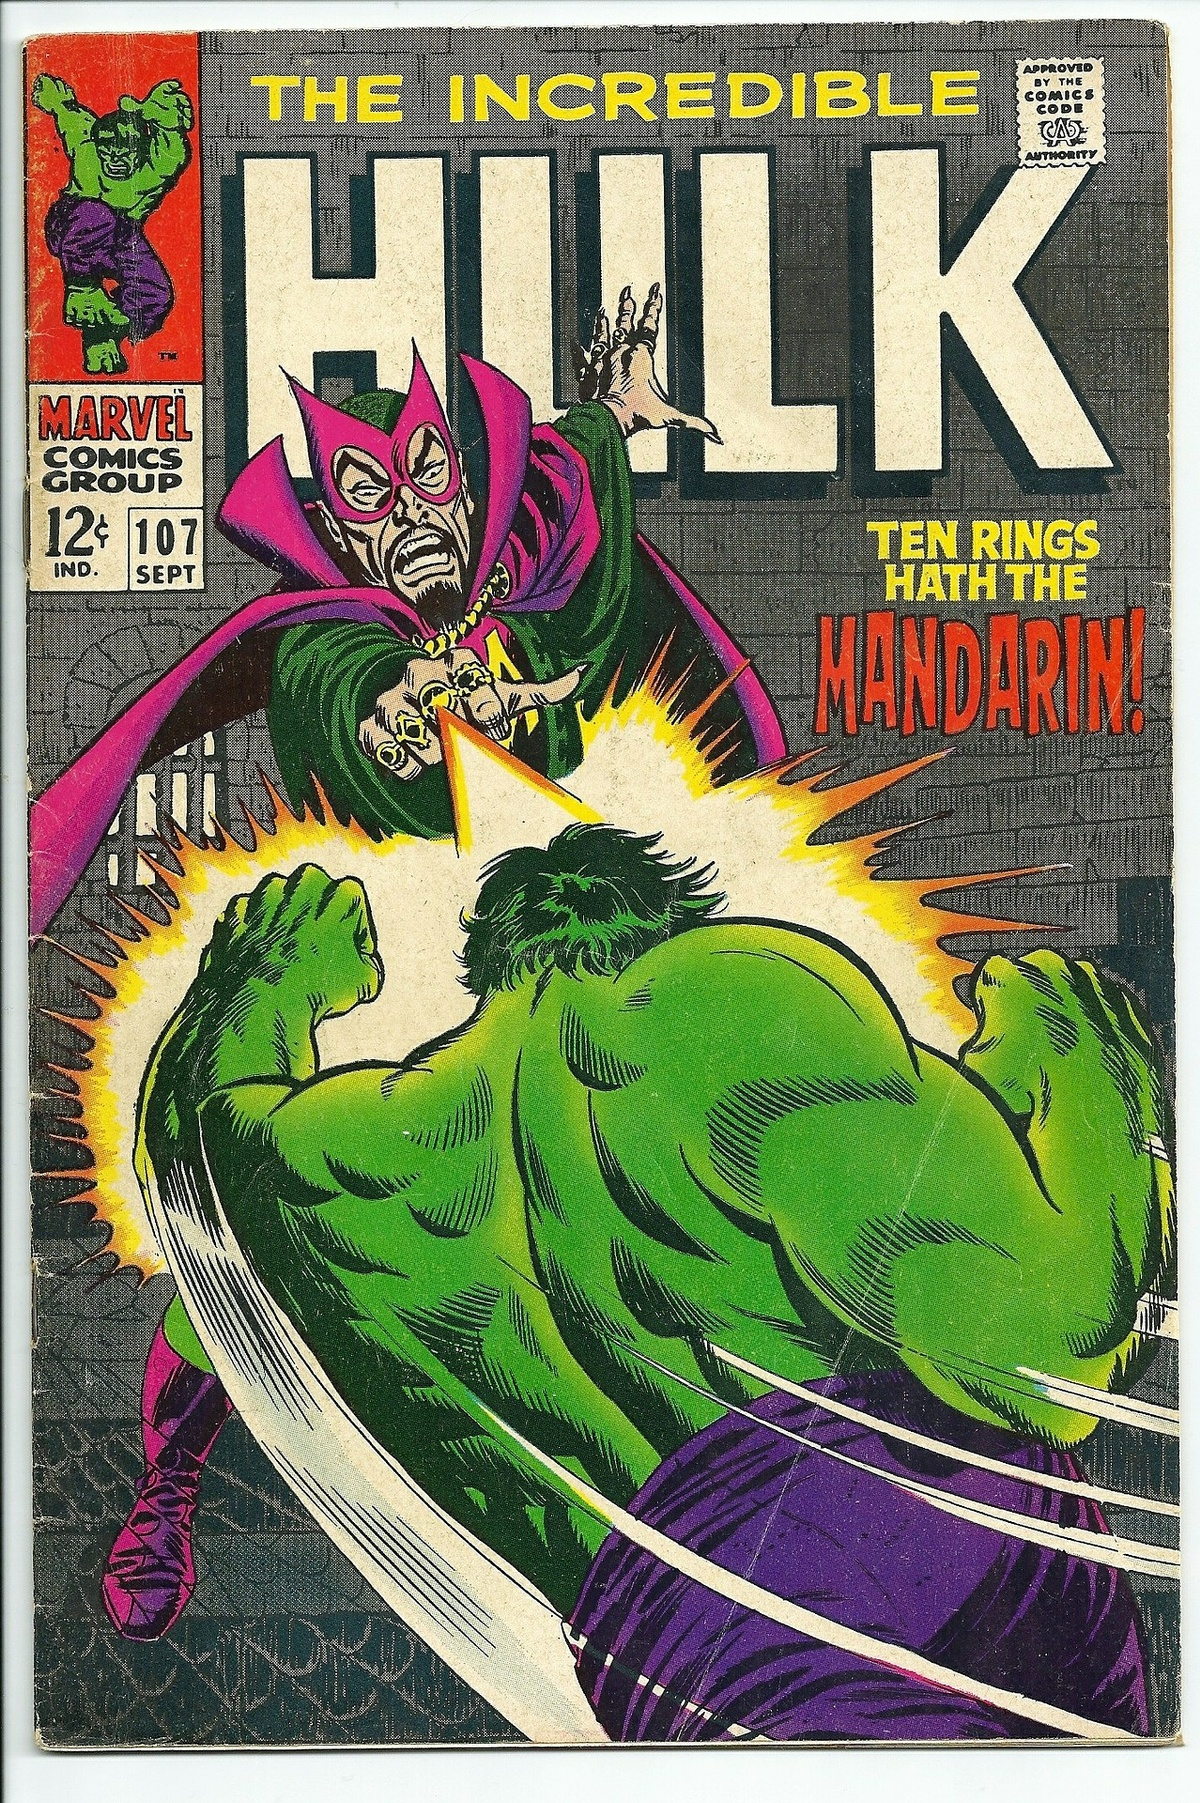 The Hulk comic book cover